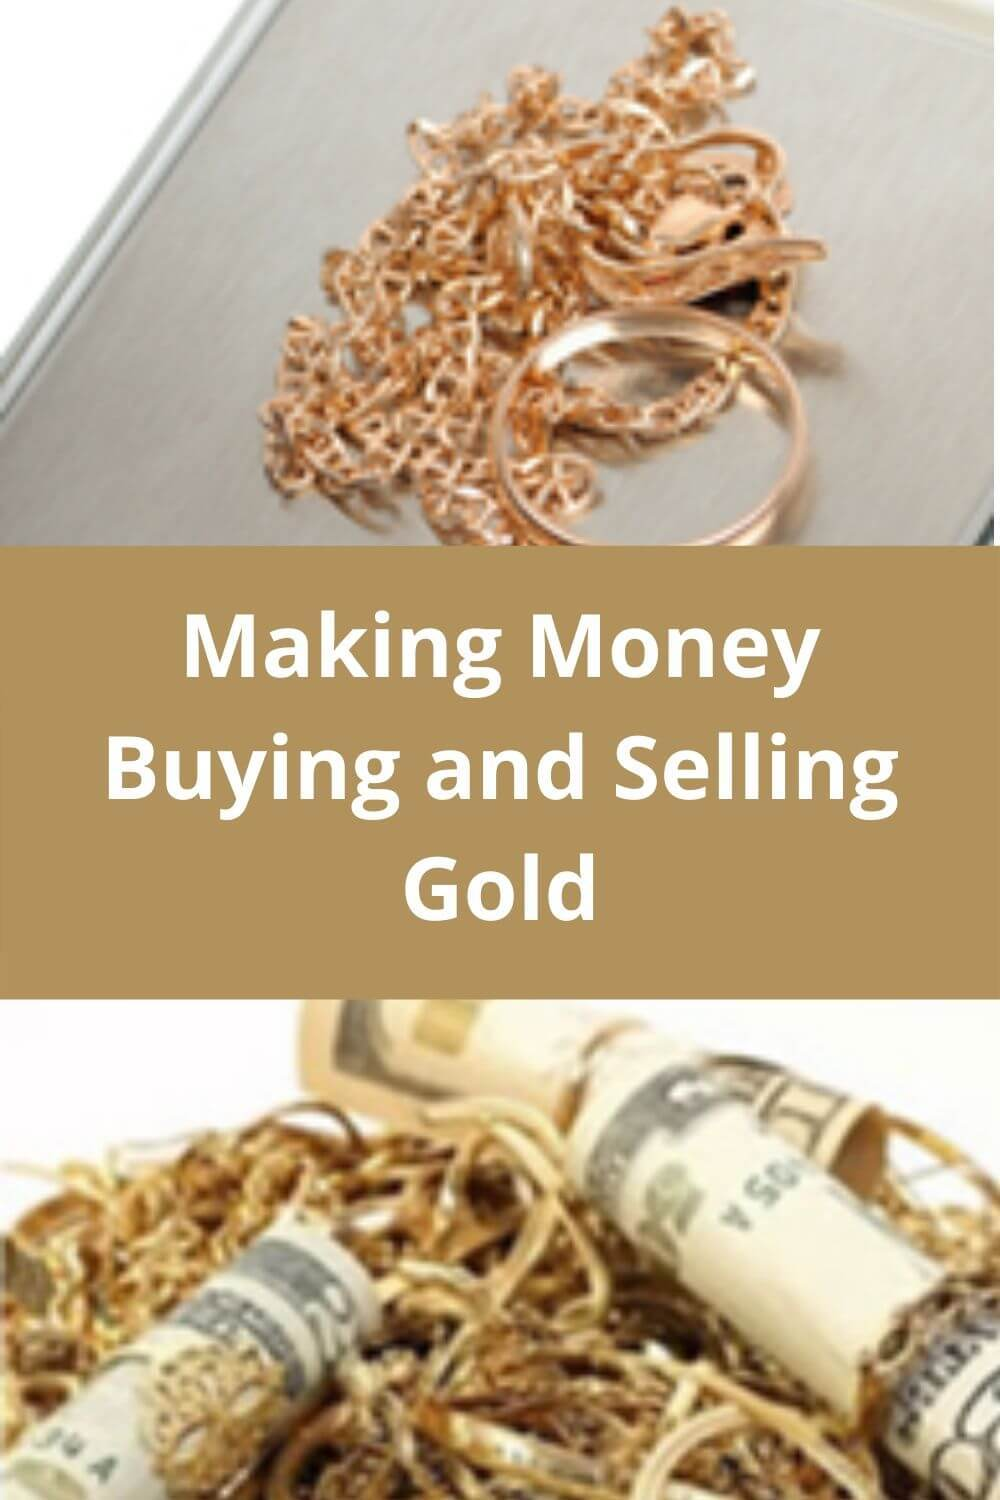 Making Money Buying and Selling Gold